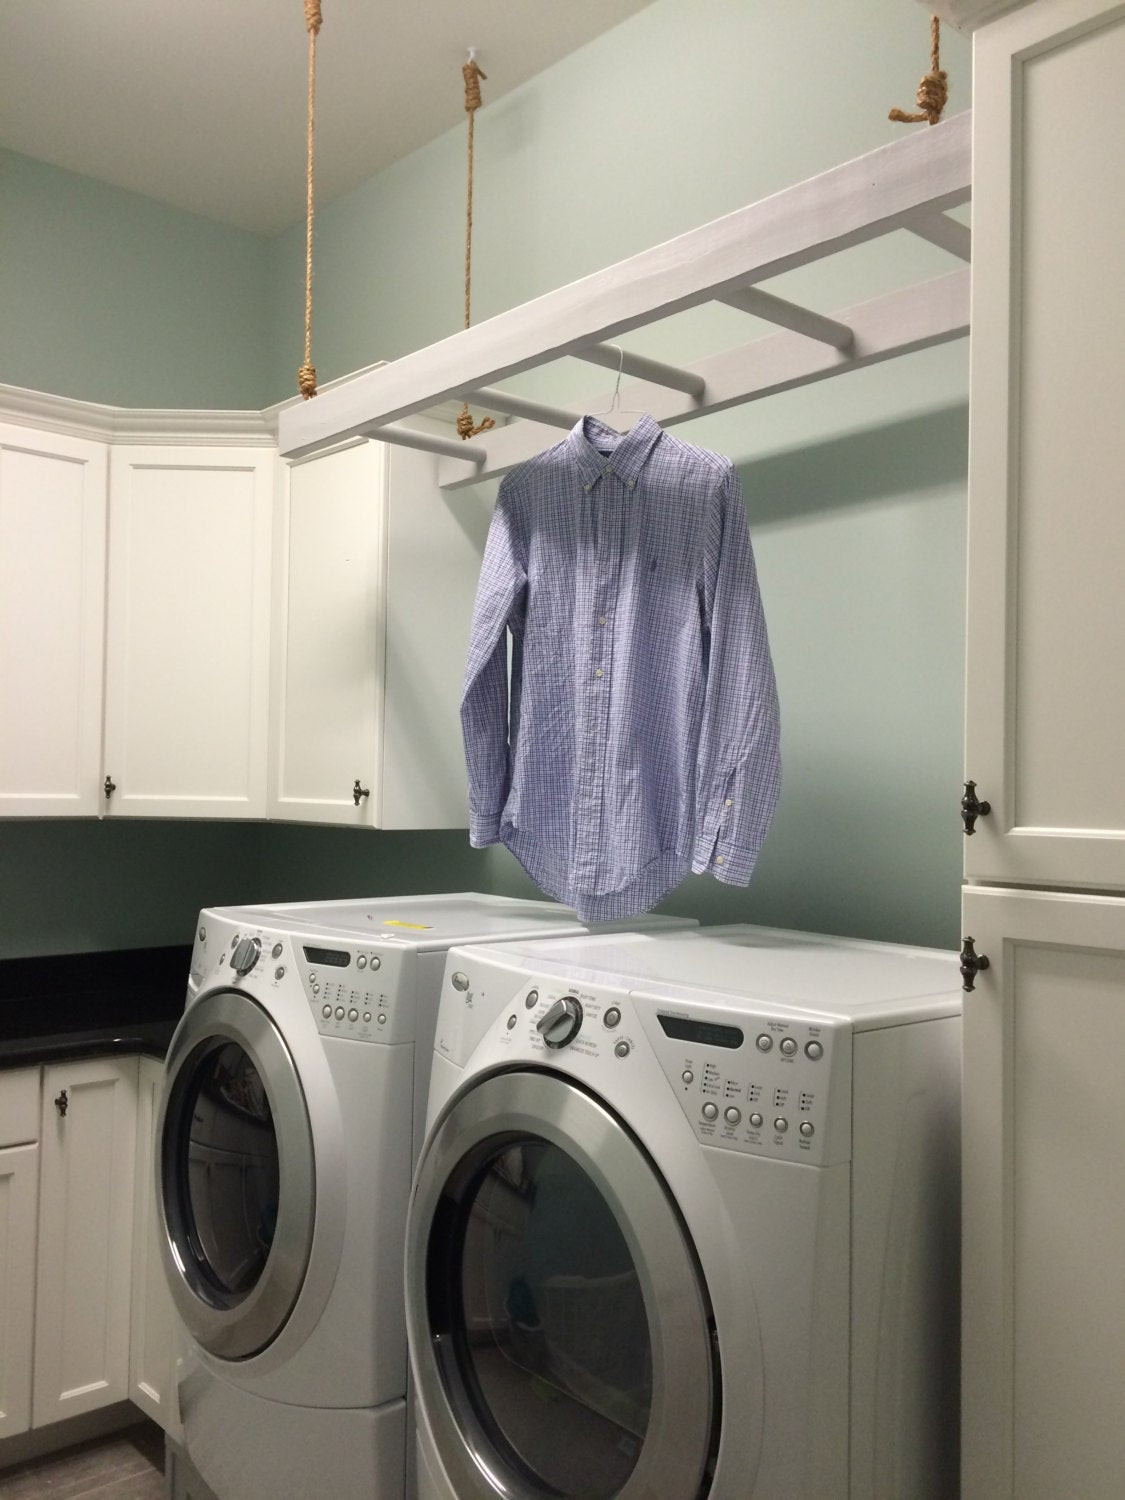 Best ideas about Laundry Room Rack . Save or Pin Clothes Rack for Laundry Room Now.